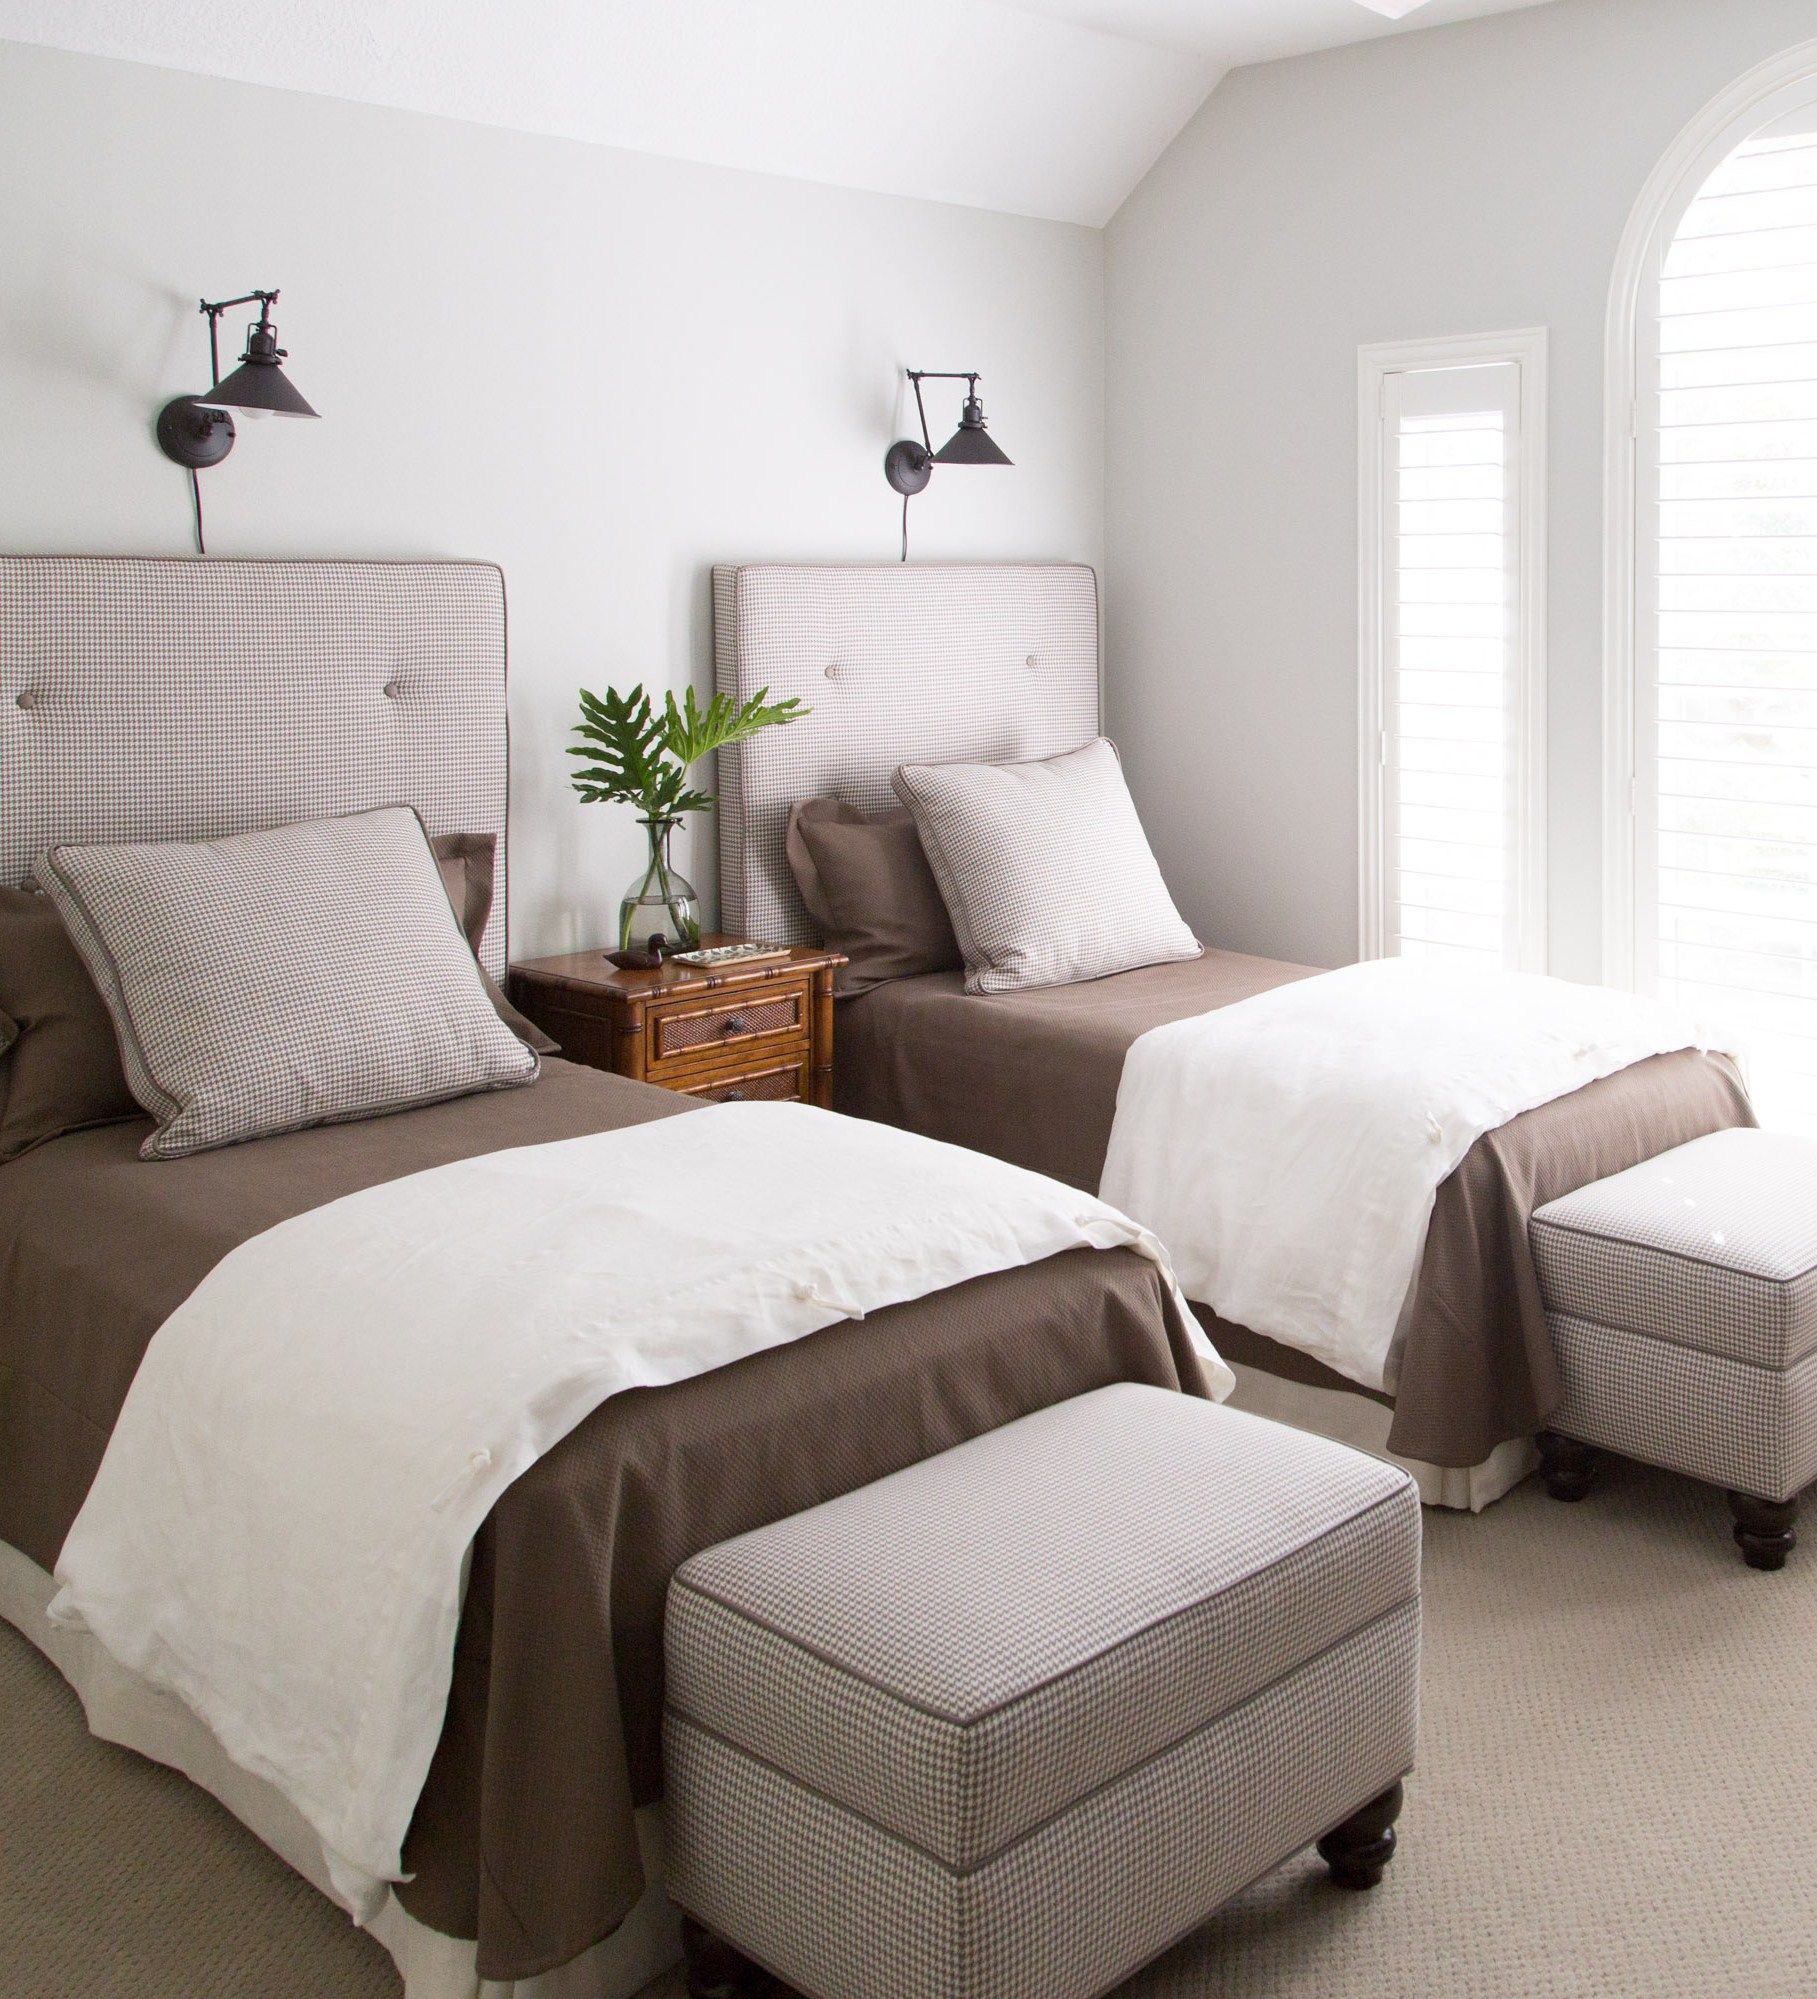 Twin bedding guest room -